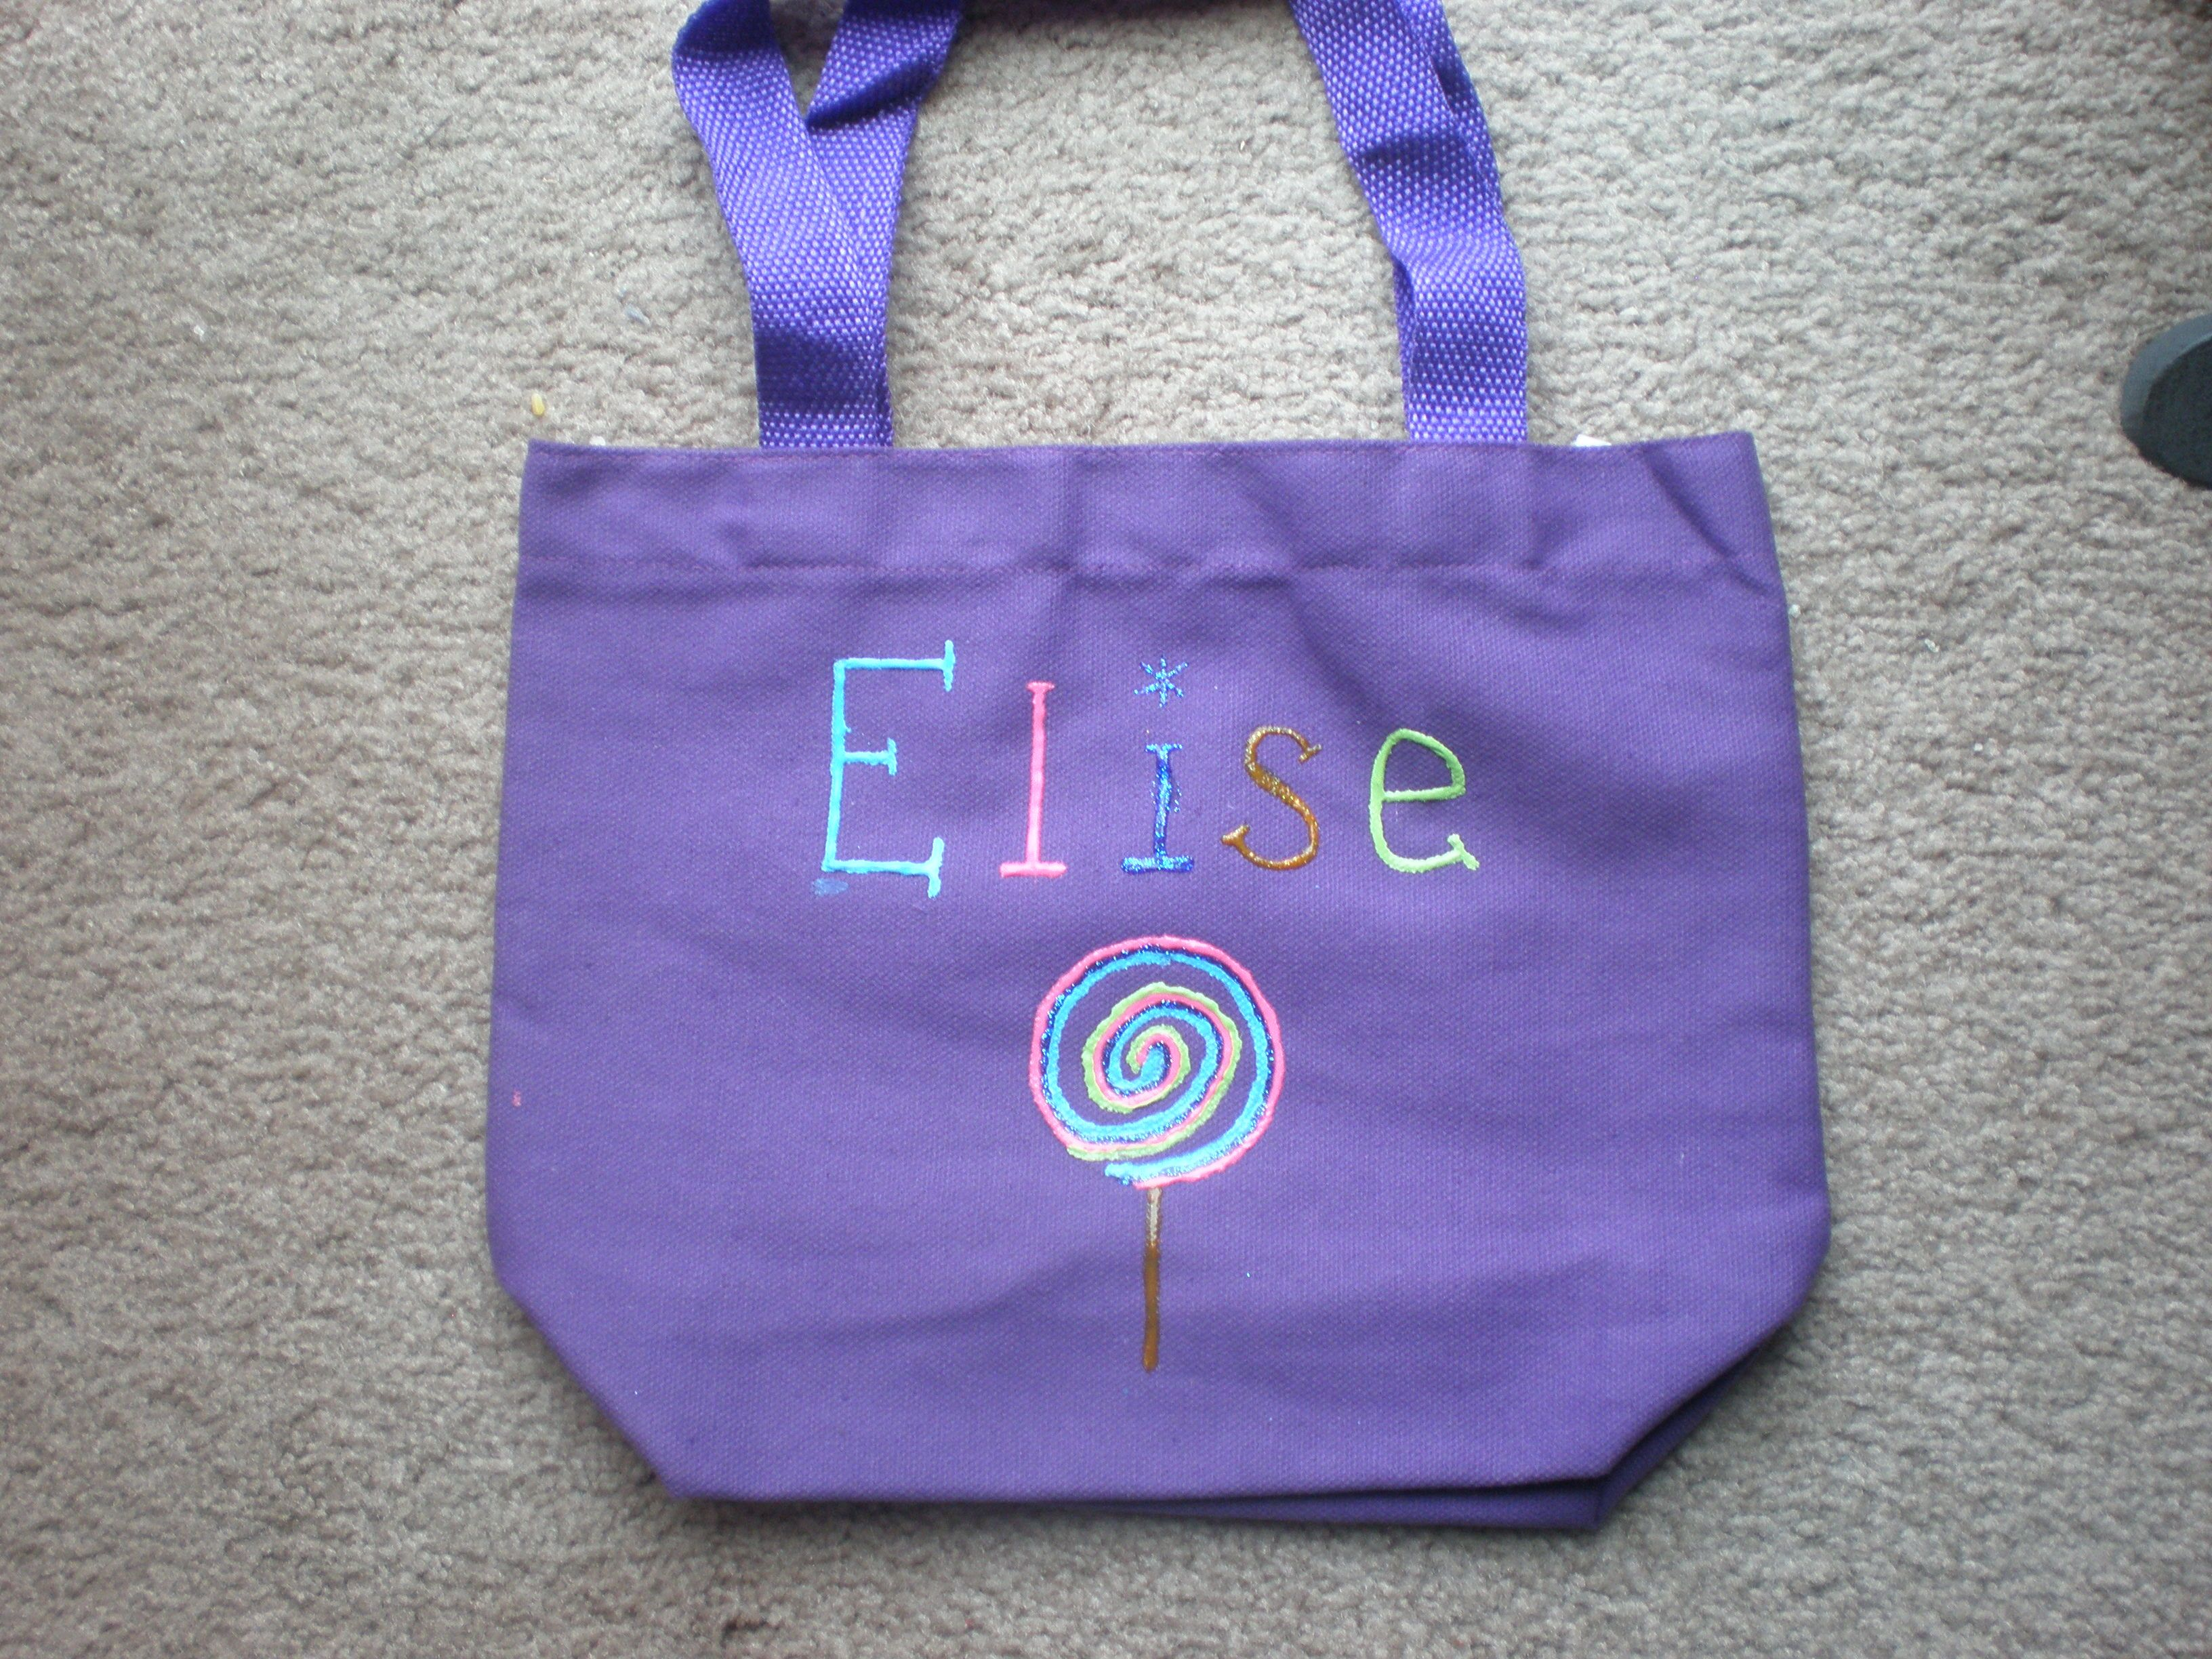 I Made Her Birthday Present To Match The Theme Puff Paints On A Plain Purple Canvas Bag From Michaels Lollipop Birthday Puff Paint Purple Canvas